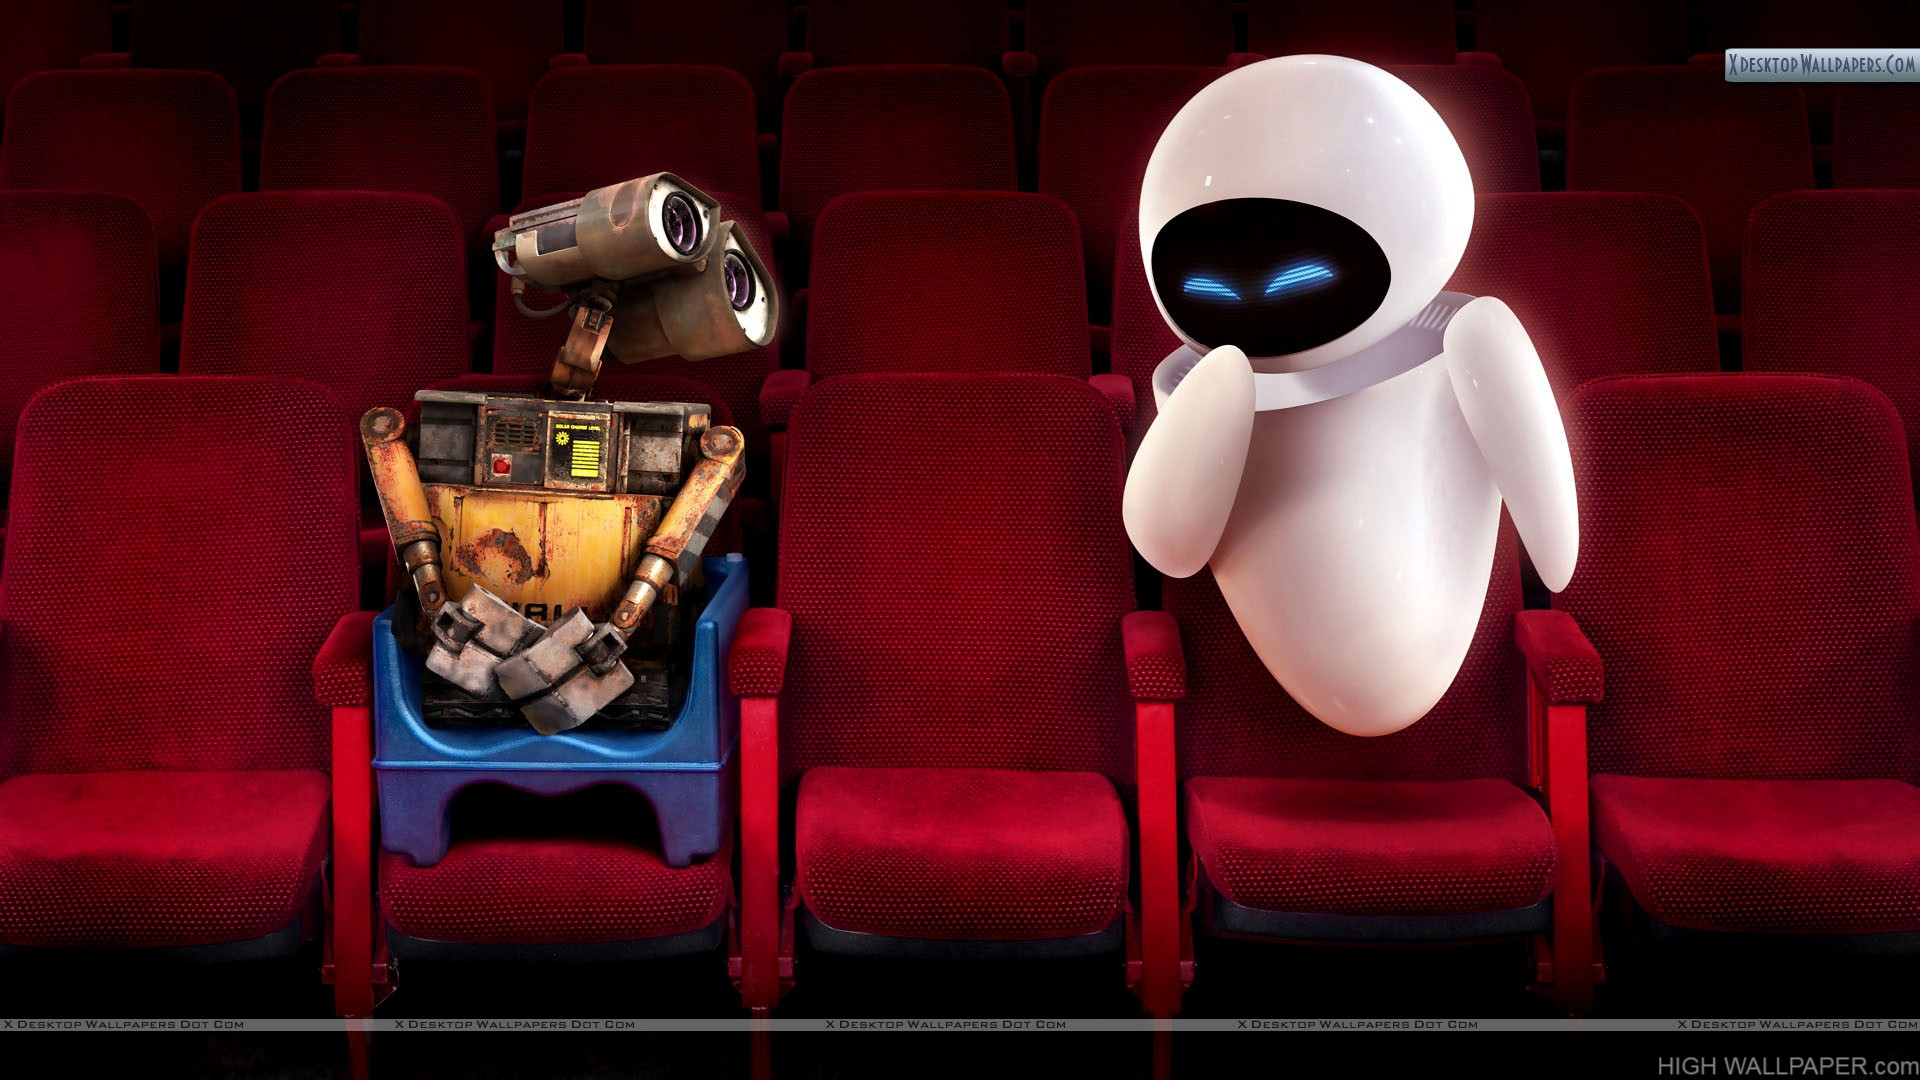 Wall E & Eve Sitting In Theater